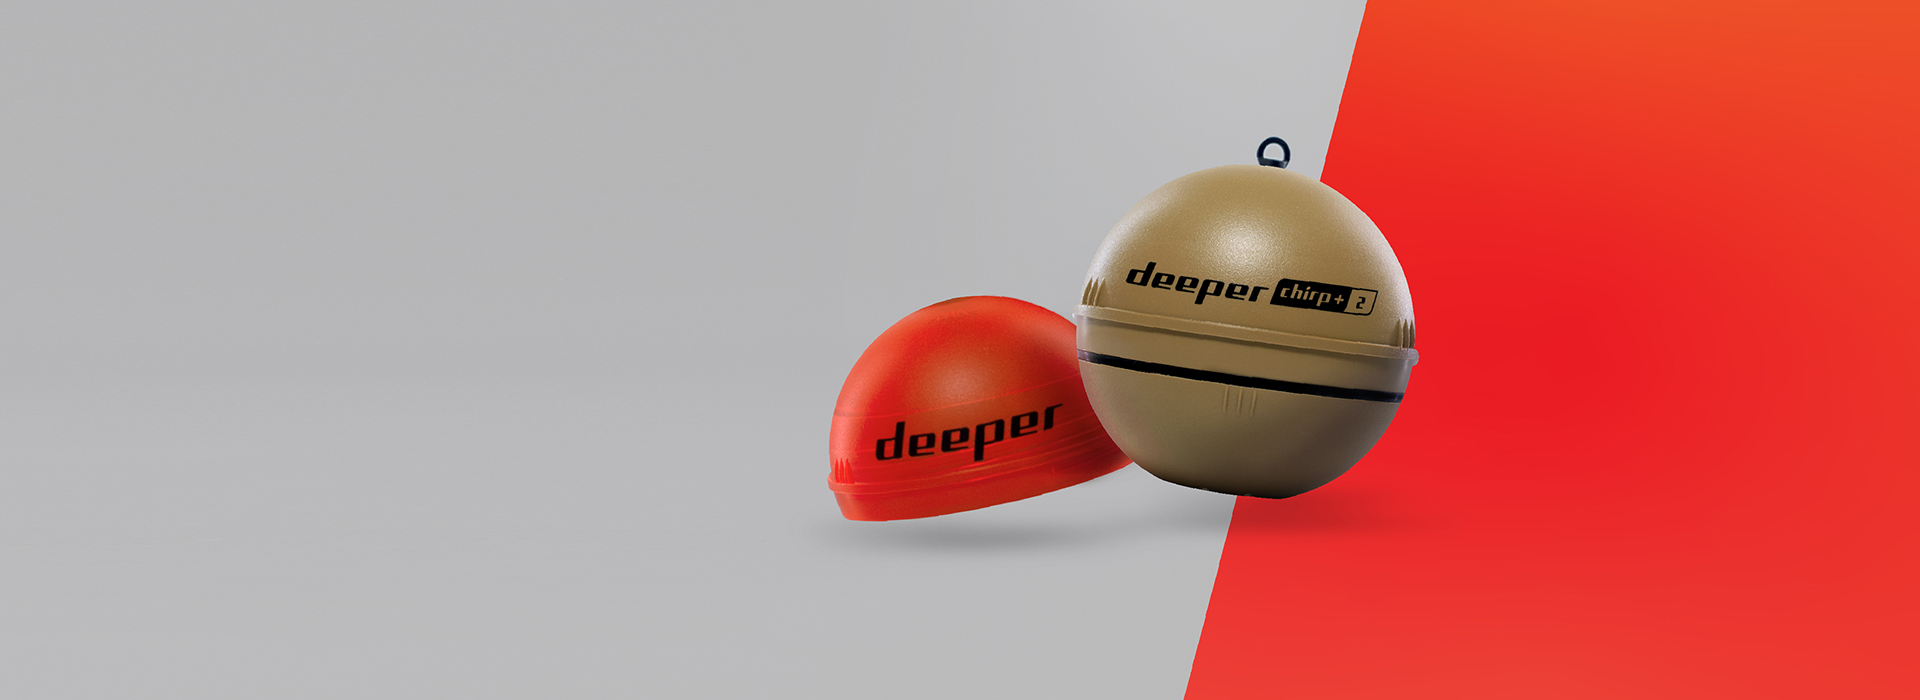 Meet the new Deeper CHIRP+ 2!